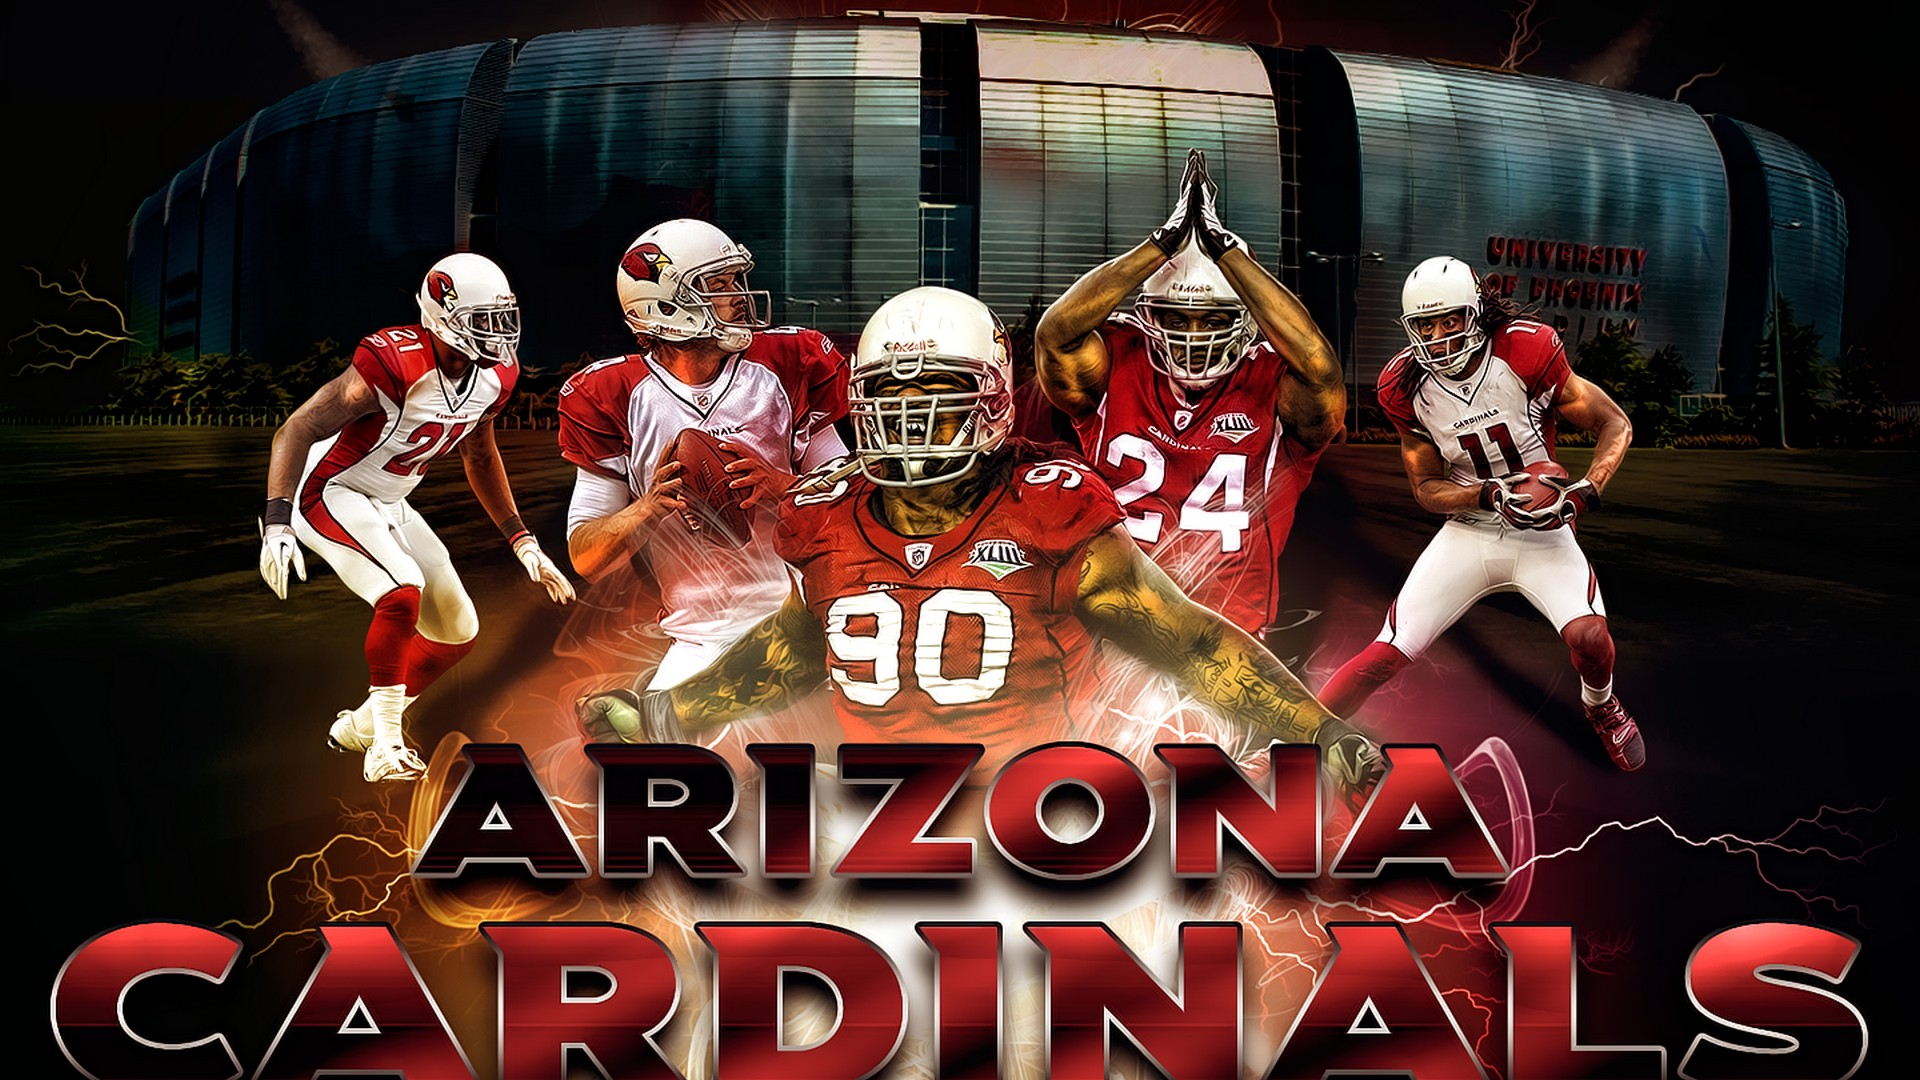 Patrick Wallpaper Hd Arizona Cardinals For Desktop Wallpaper 2019 Nfl